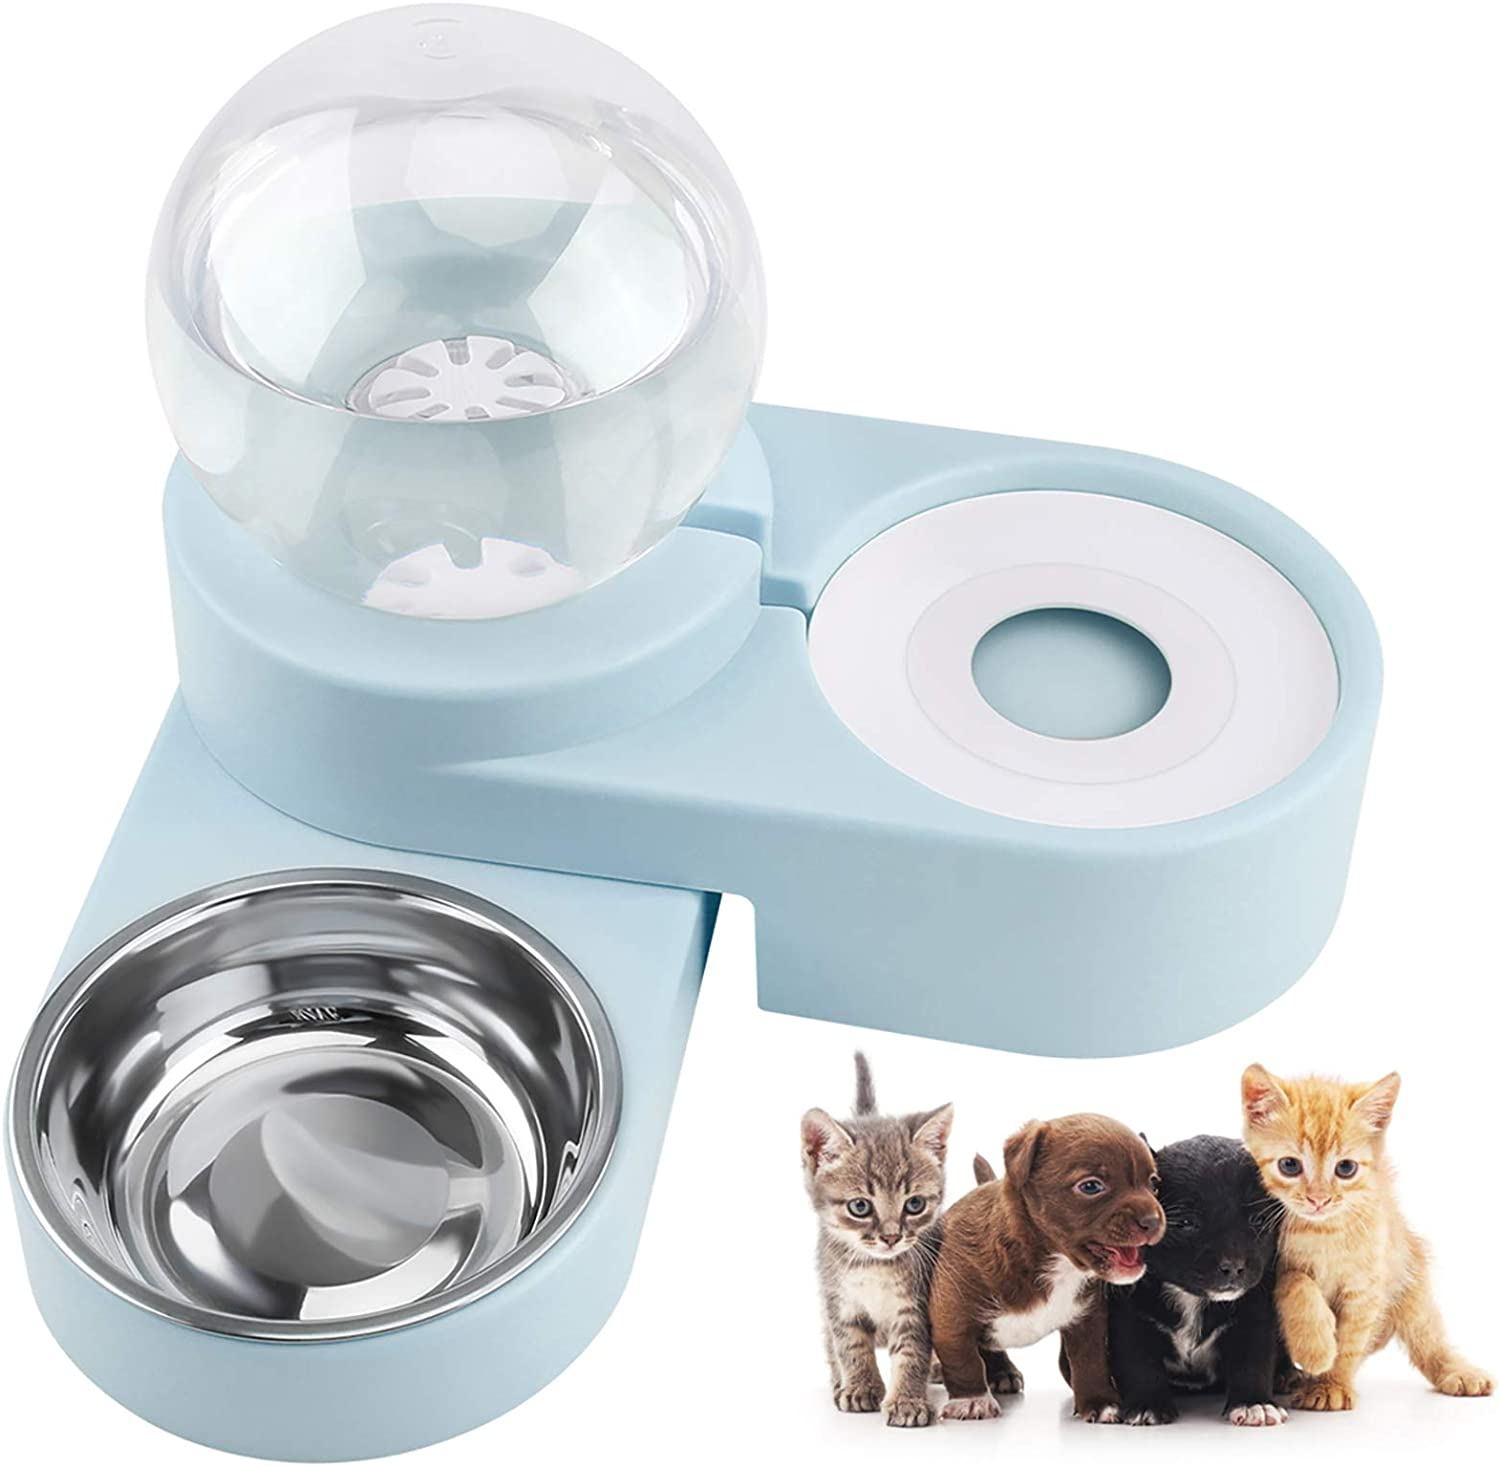 FPVERA Double Cat Bowls with Stand Pet Water Bowl and Food Bowl Set Dog Bowls and Cat Food Bowls with Pets Automatic Water Dispenser for Small Dogs and Cats